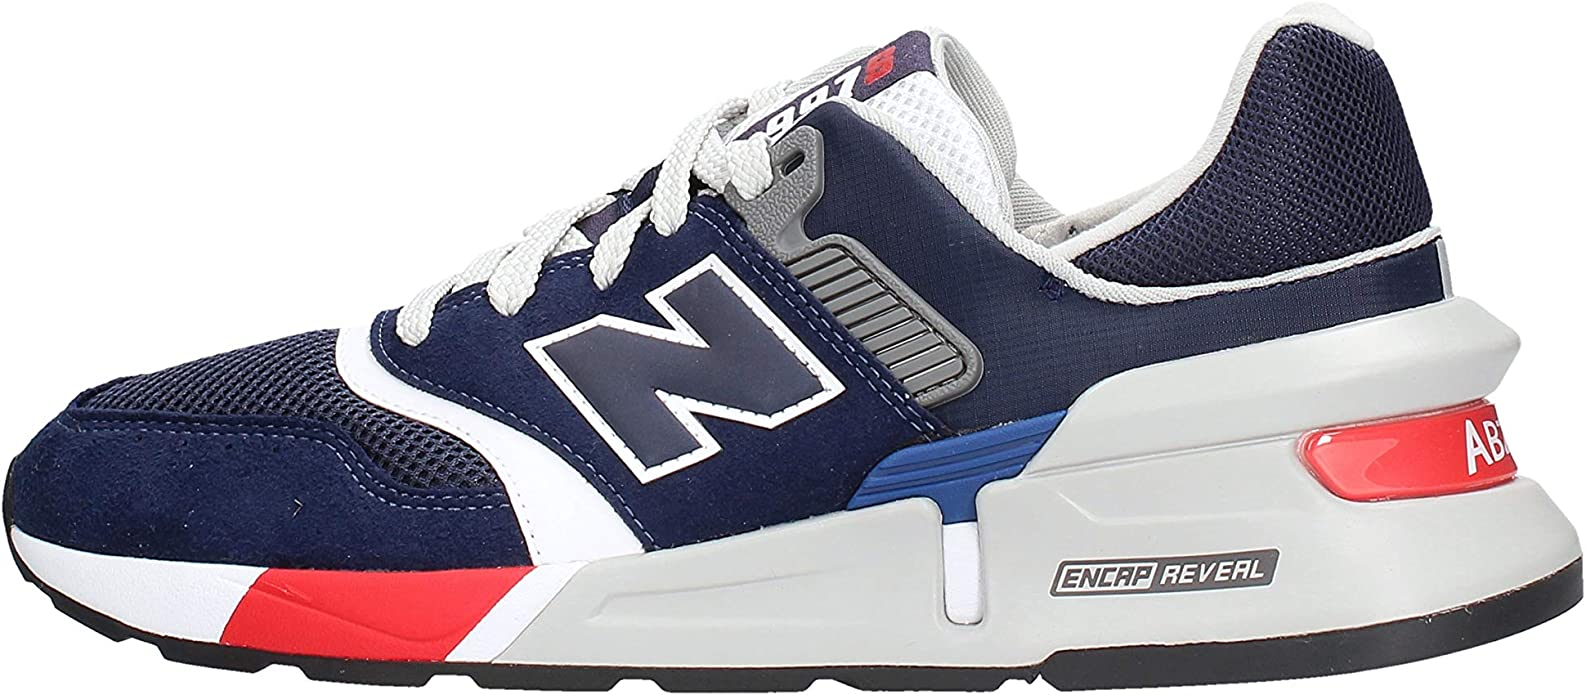 New Balance MS997LOT, Trail Running Shoe Mens, Multicolor, 32 EU: Amazon.es: Zapatos y complementos